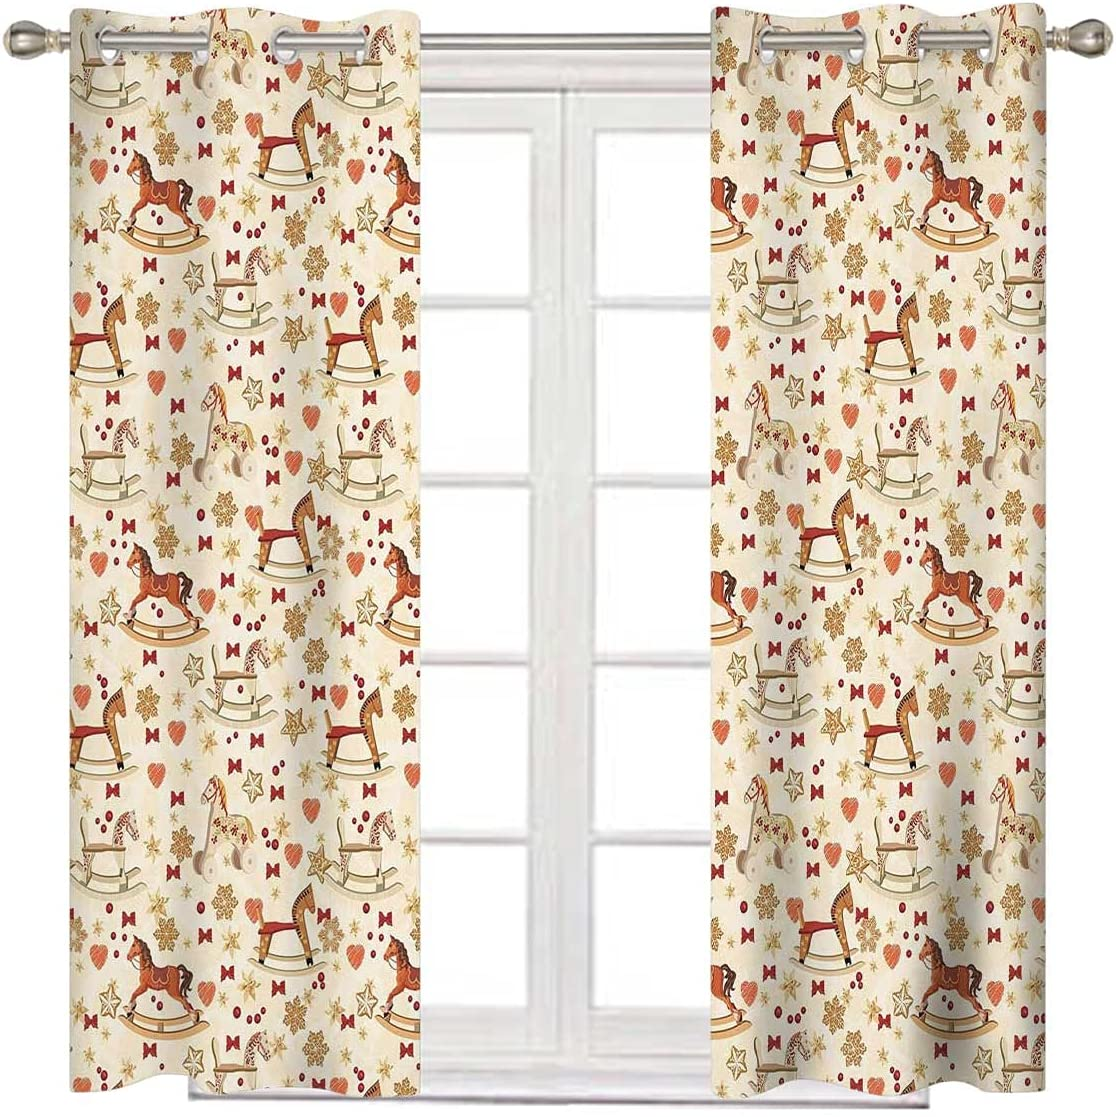 Toy Horse Short Curtain 63 Curt Inches Blackout Multicolor Long Kansas City Mall Bombing new work